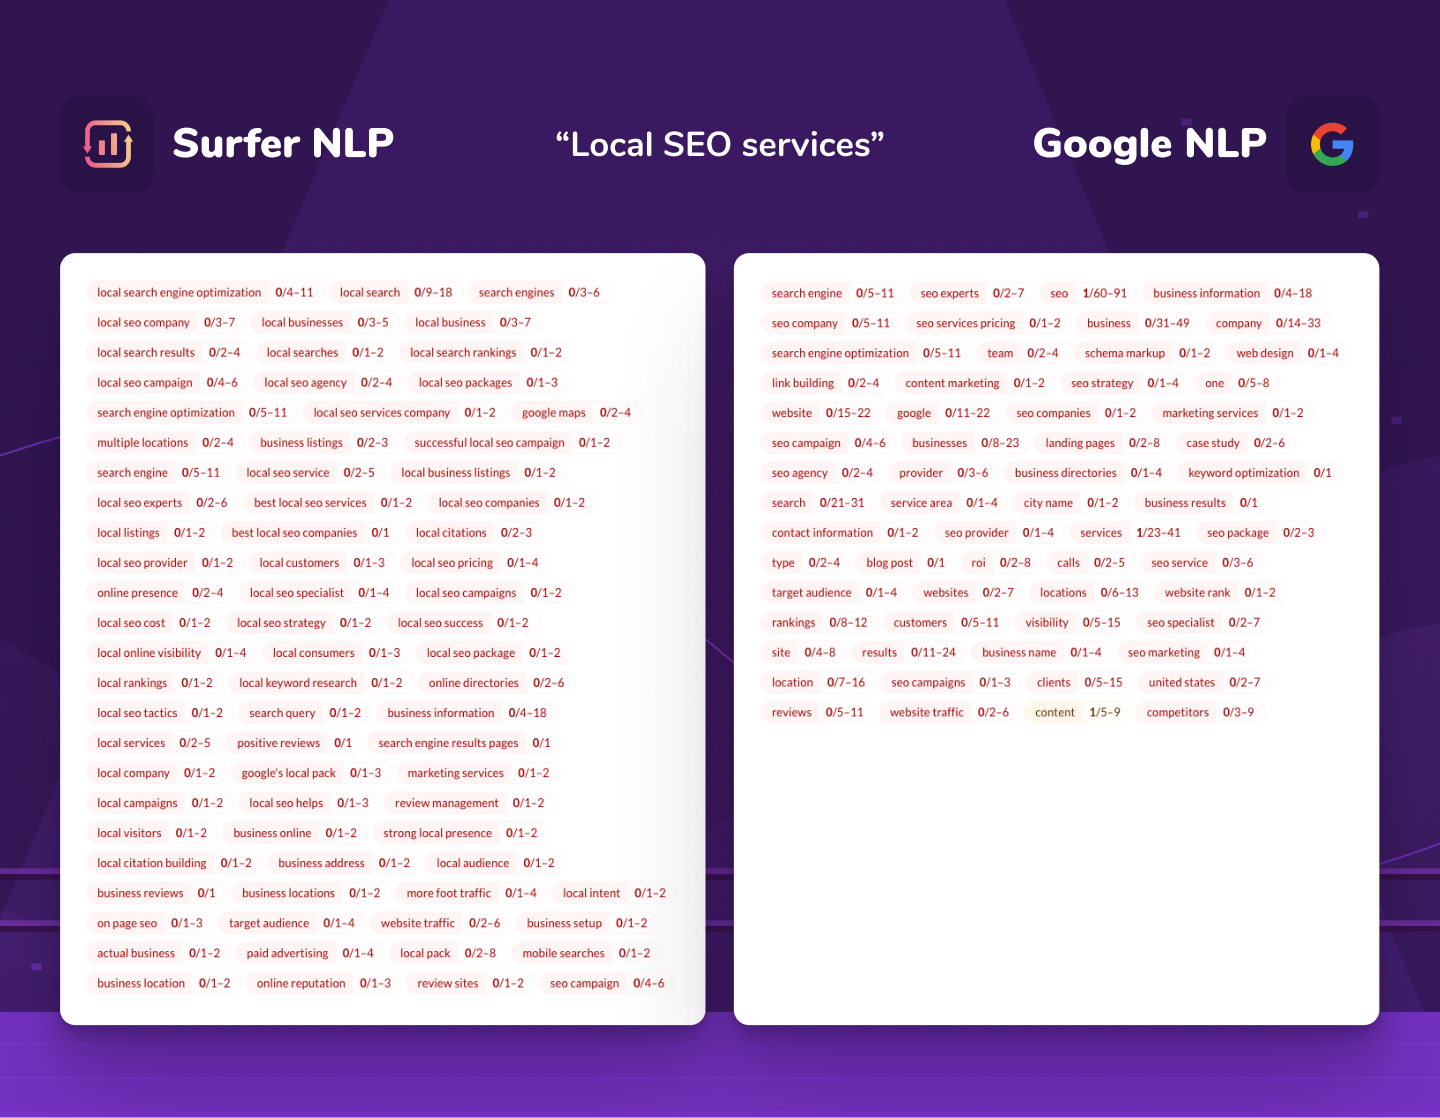 """comparison of Surfer NLP and Google NLP for """"local SEO services"""" keyword"""